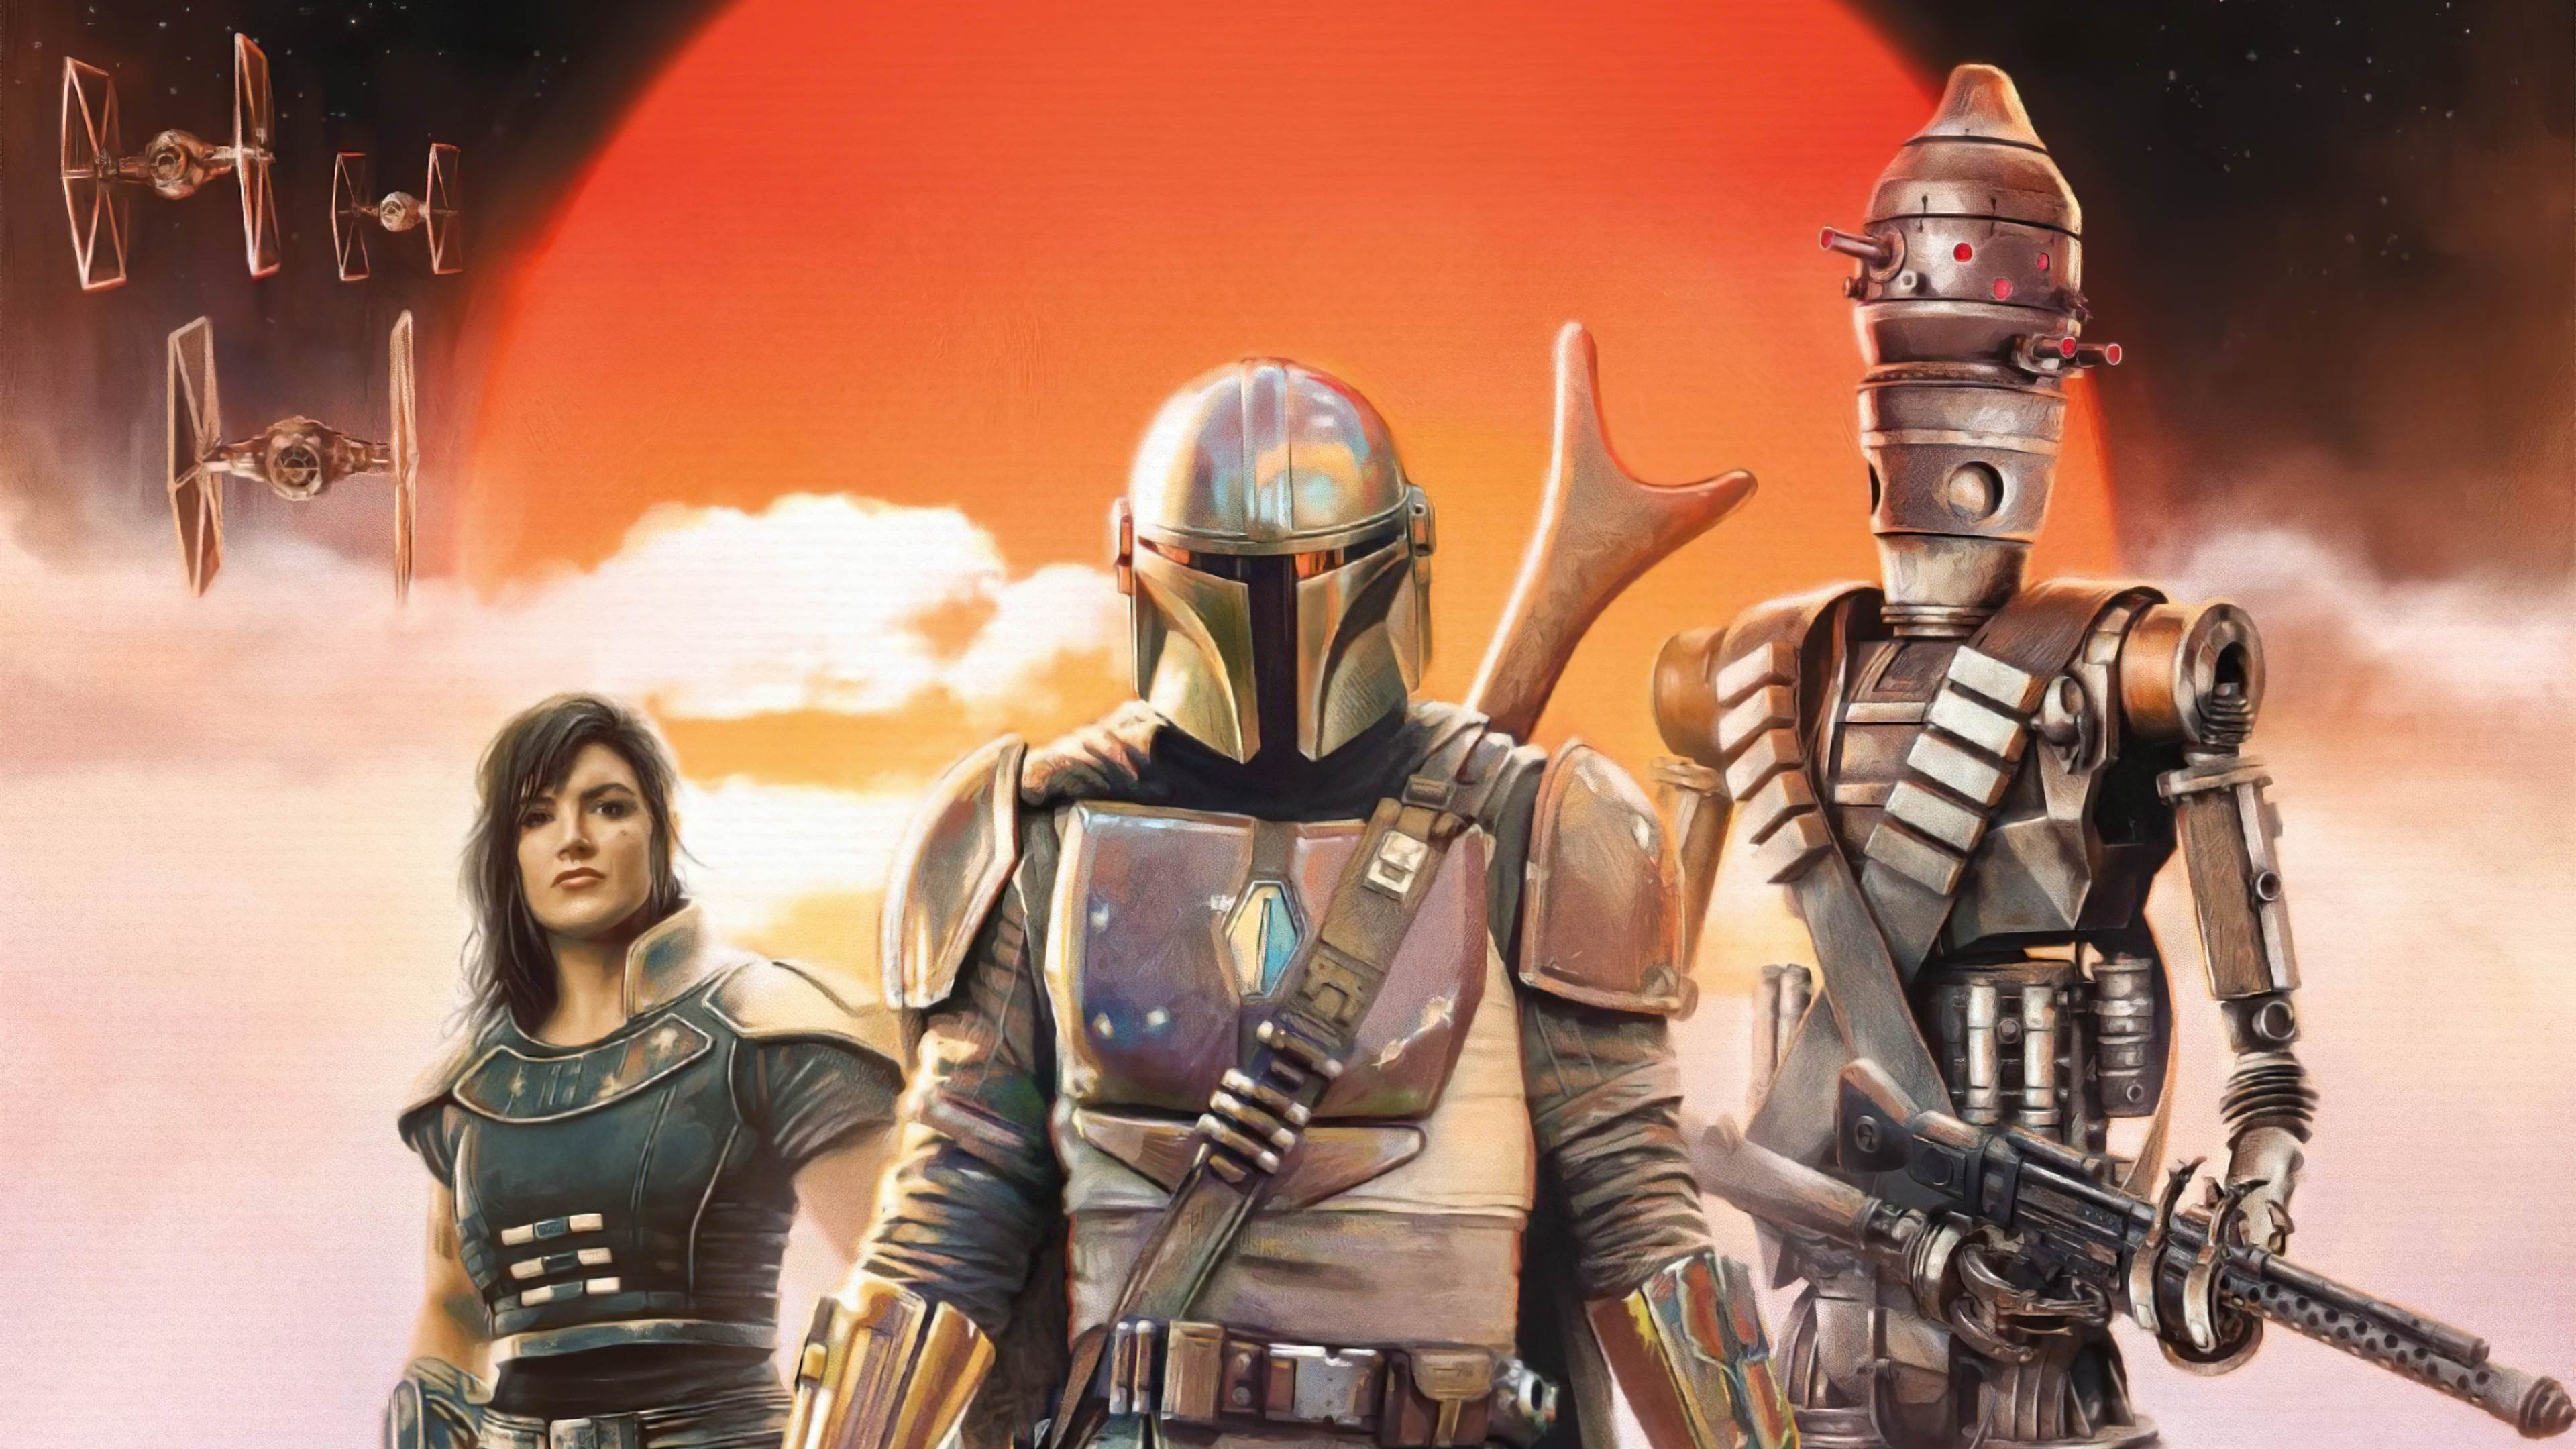 Wallpaper Characters from Mandalorian